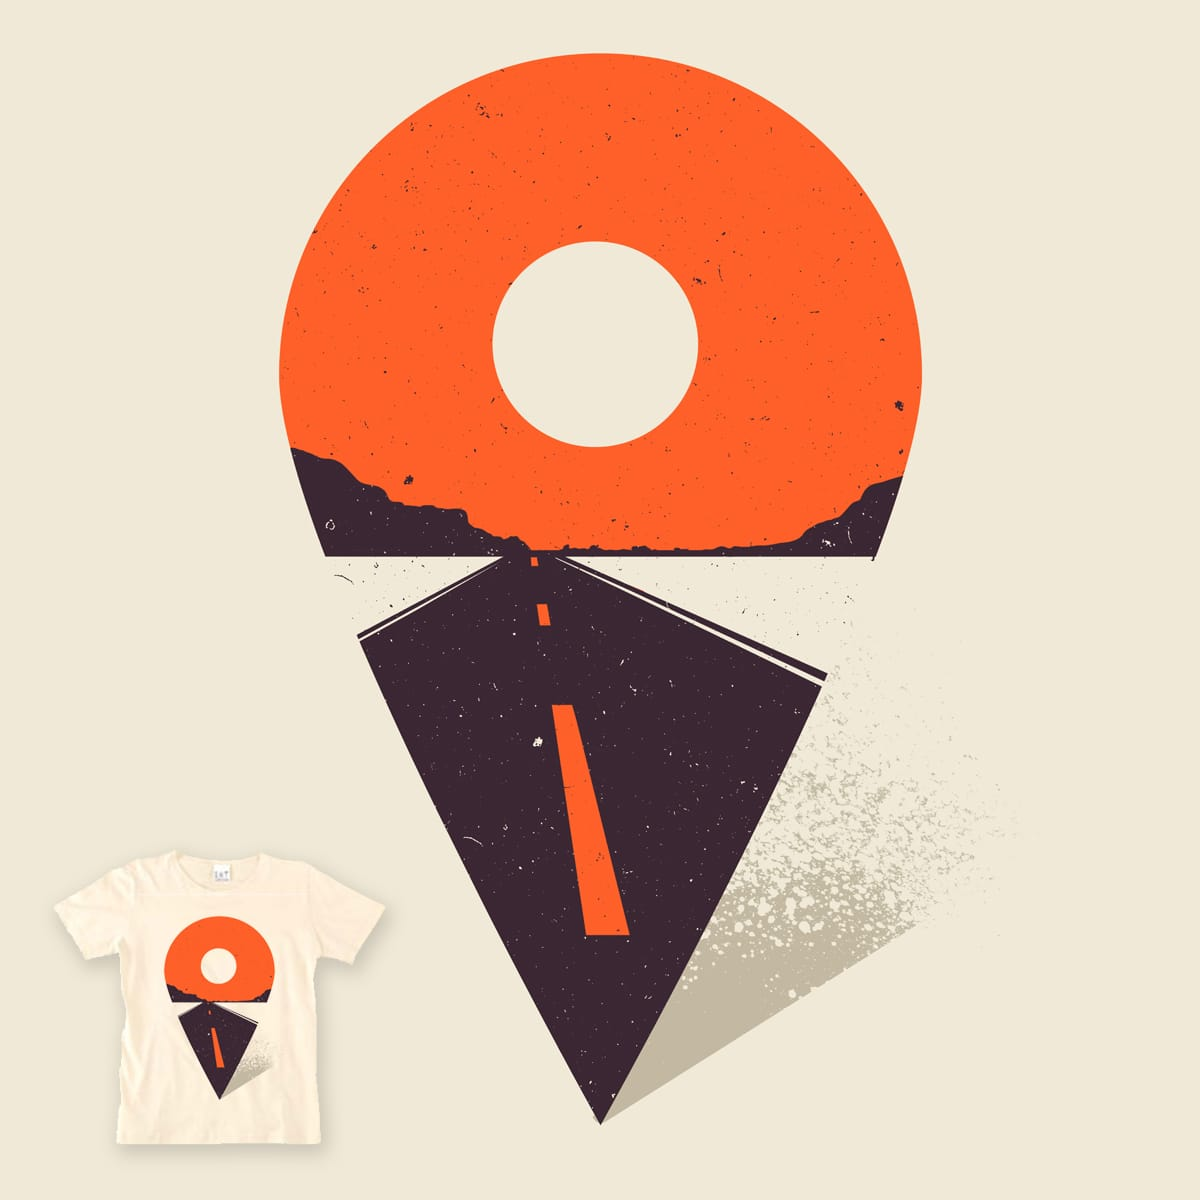 my current location by campkatie on Threadless